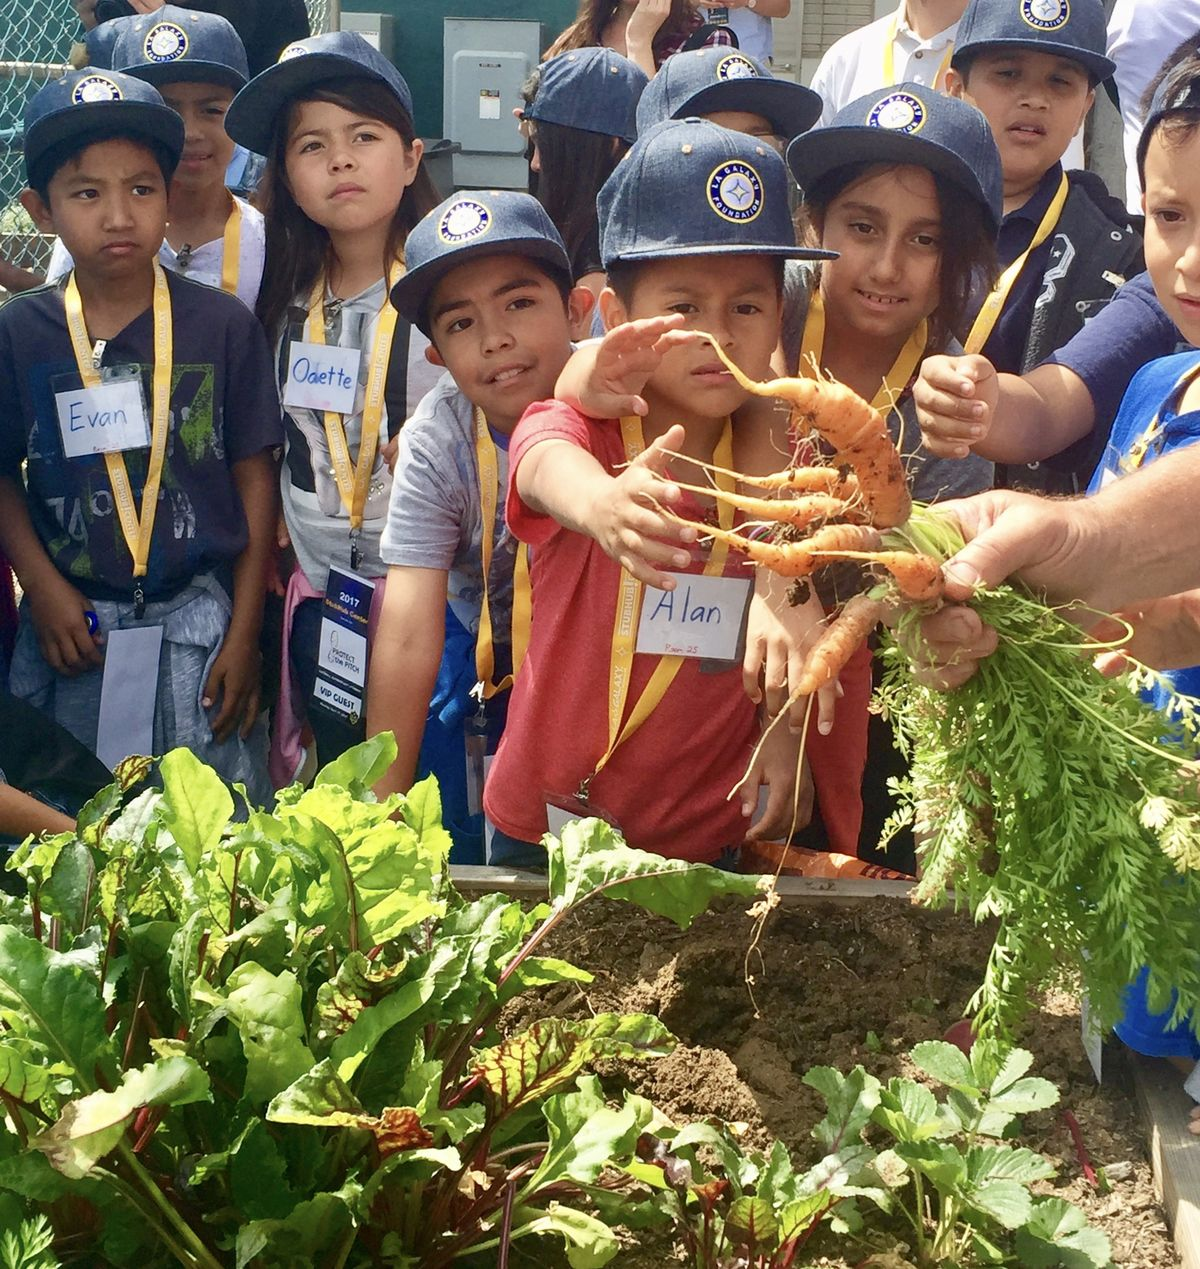 Students from Catskill Avenue Elementary explore StubHub Center's greenhouse and examine a newly uprooted carrot on April 17, 2017. StubHub Center's greenhouse produces numerous types of vegetables to provide food for tenants at the stadium.